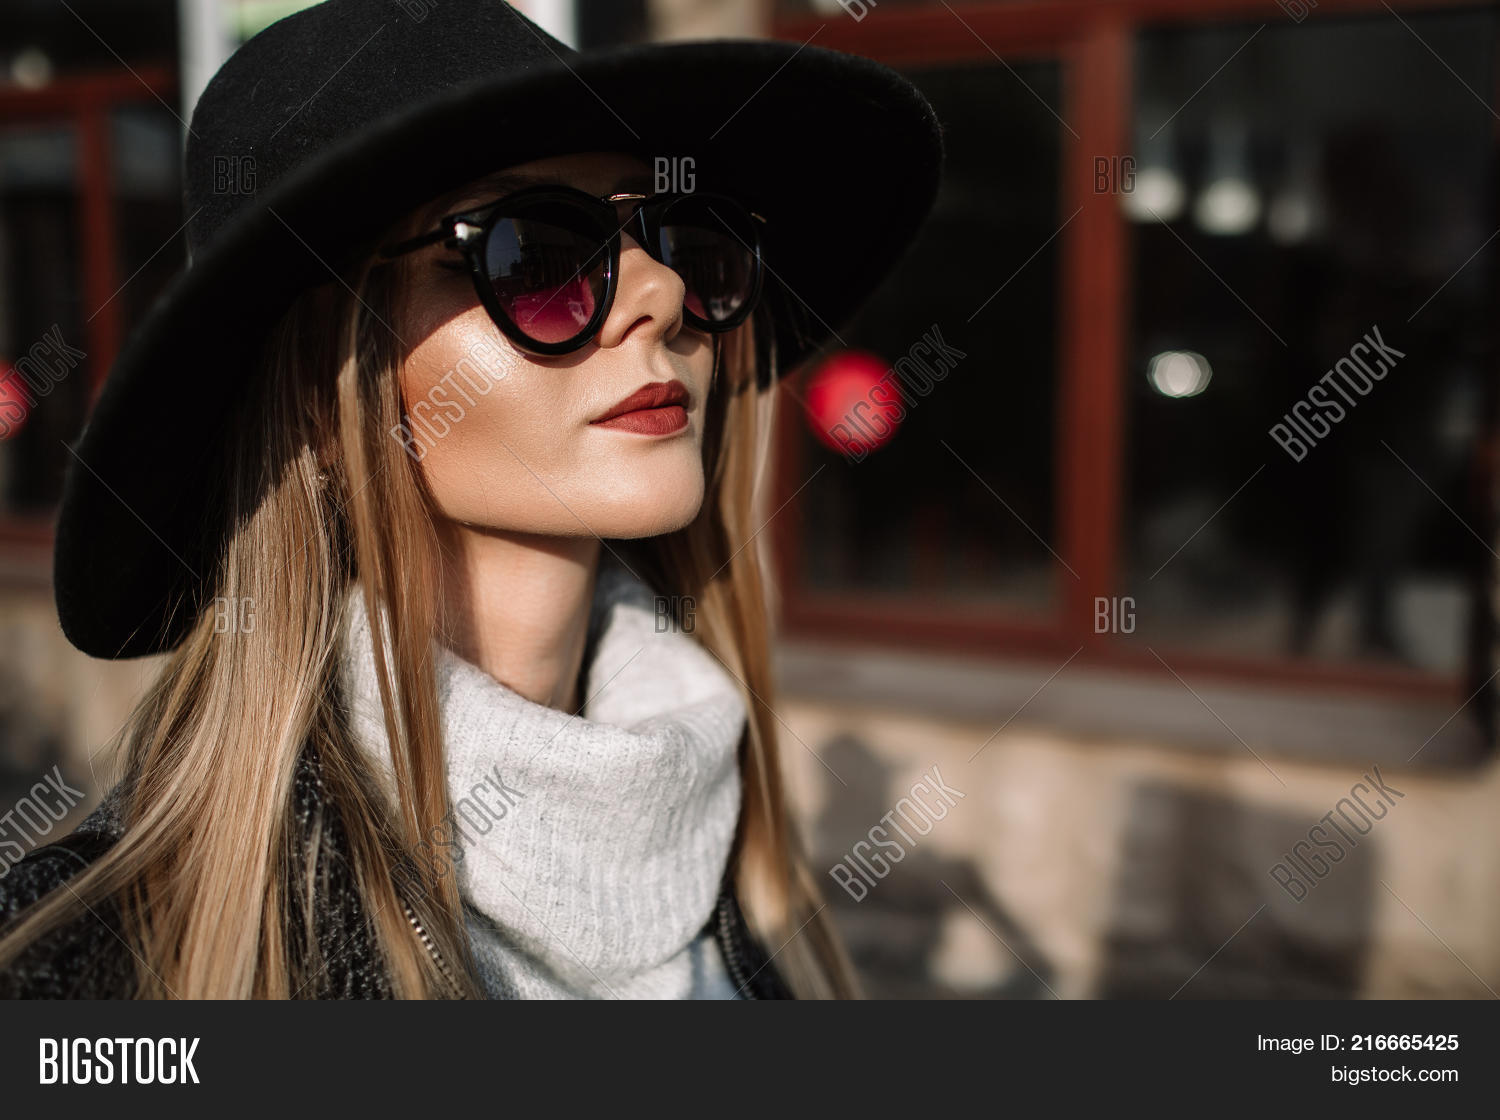 Portrait Of A Young Beautiful Fashionable Girl Wearing Sunglasses. Model In  A Stylish Black Hat 93063a52120